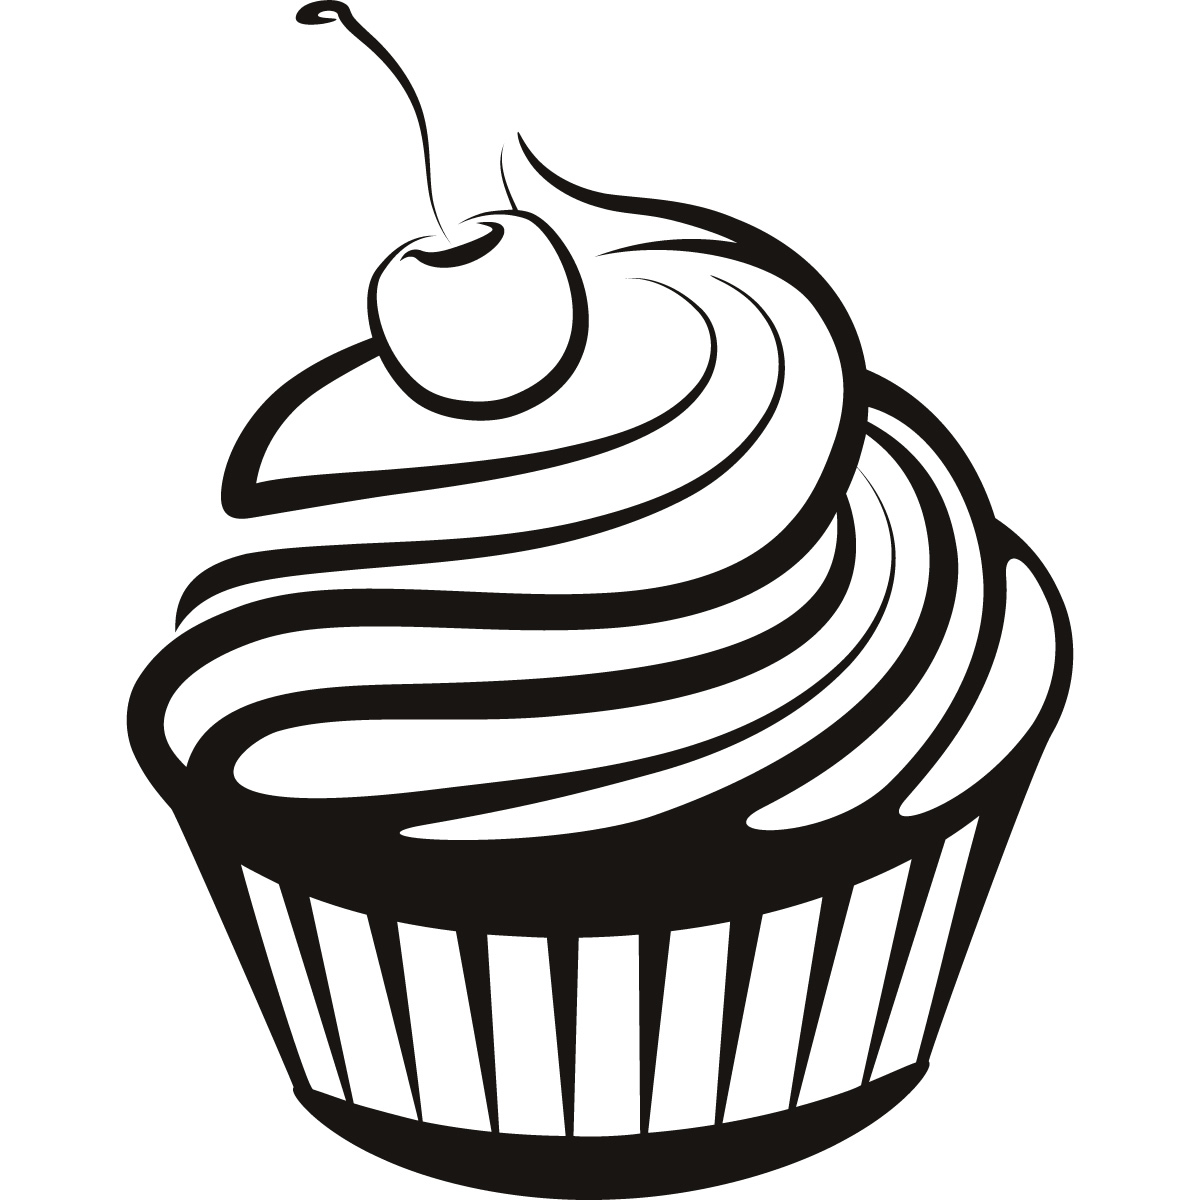 Cupcake Black And White Cupcake Drawings And Cupcakes Clipart